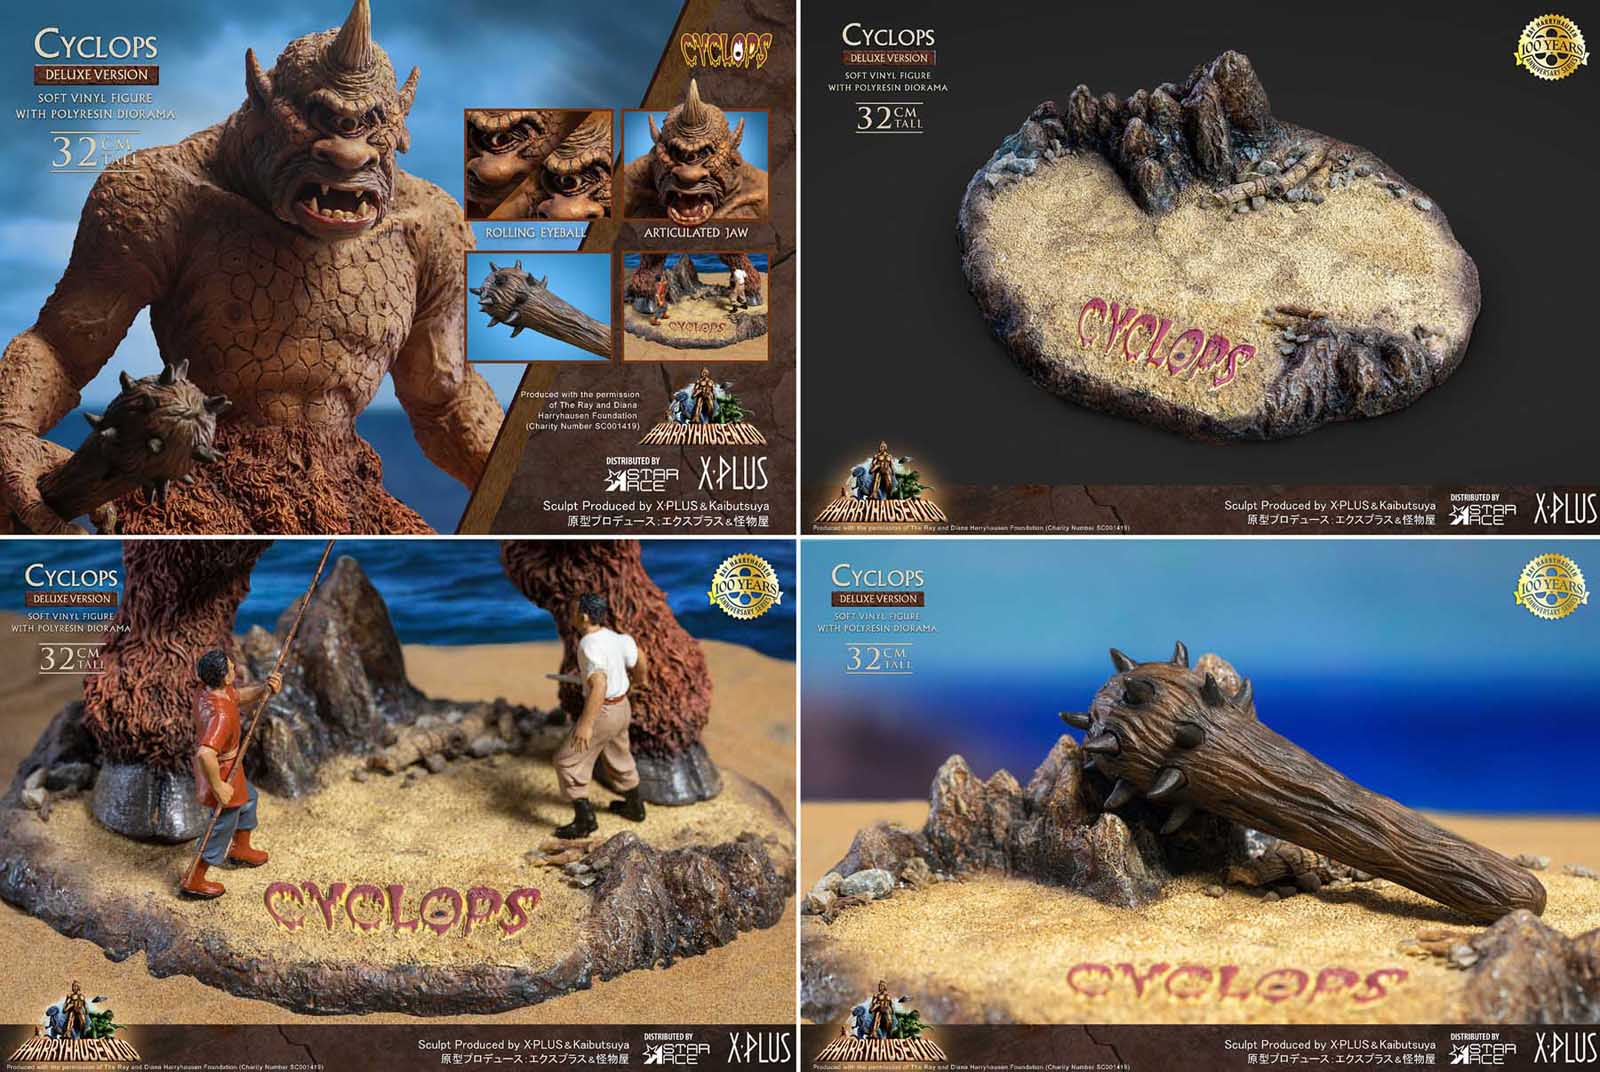 STAR ACE THE 7TH VOYAGE OF SINBAD CYCLOPS SOFT VINYL STATUE [DELUXE VERSION]